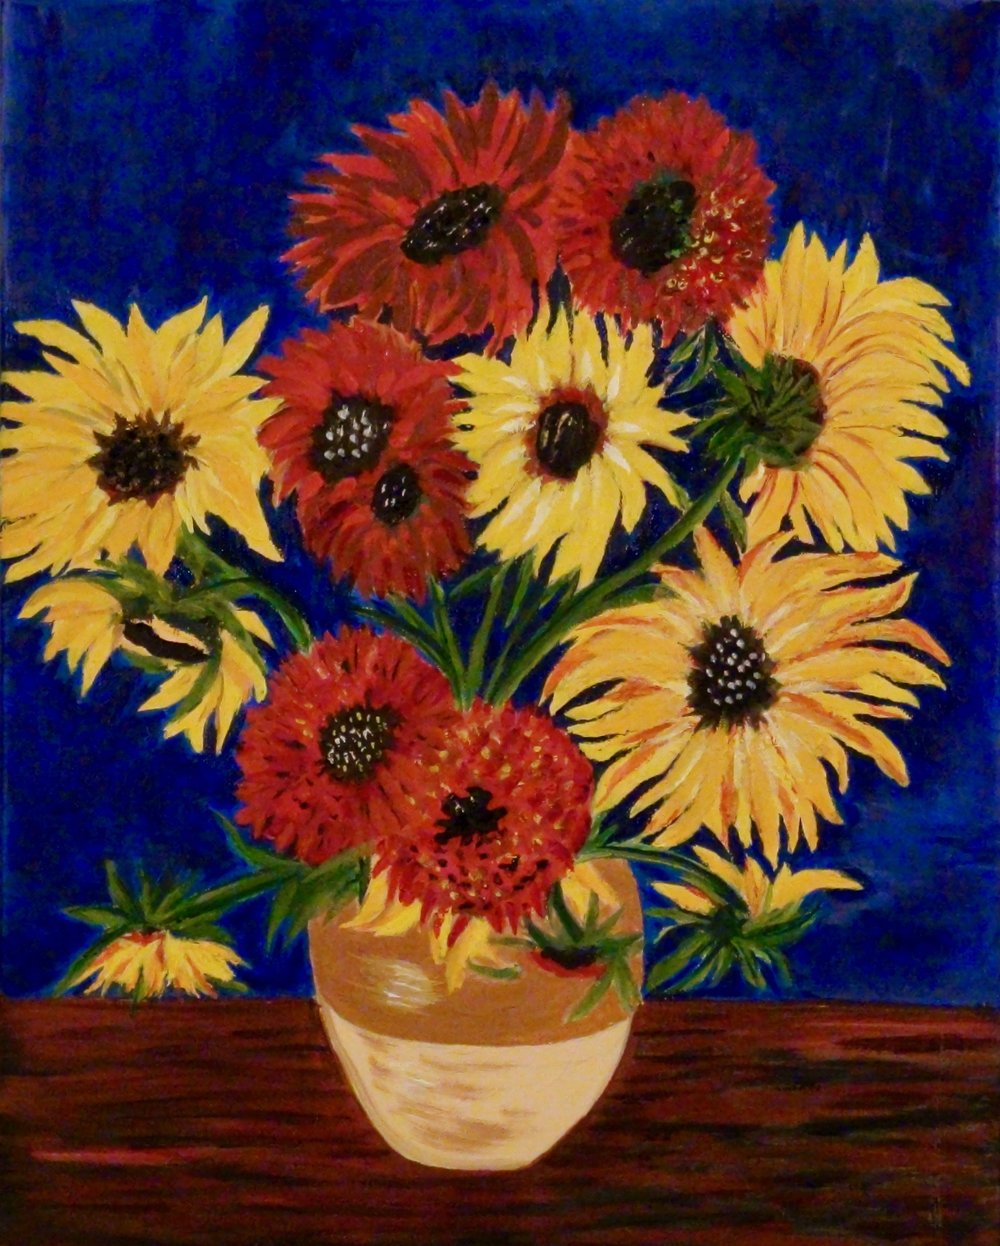 """Sunflowers in a Vase"" - Oil, 16""x 20"" - 2016"